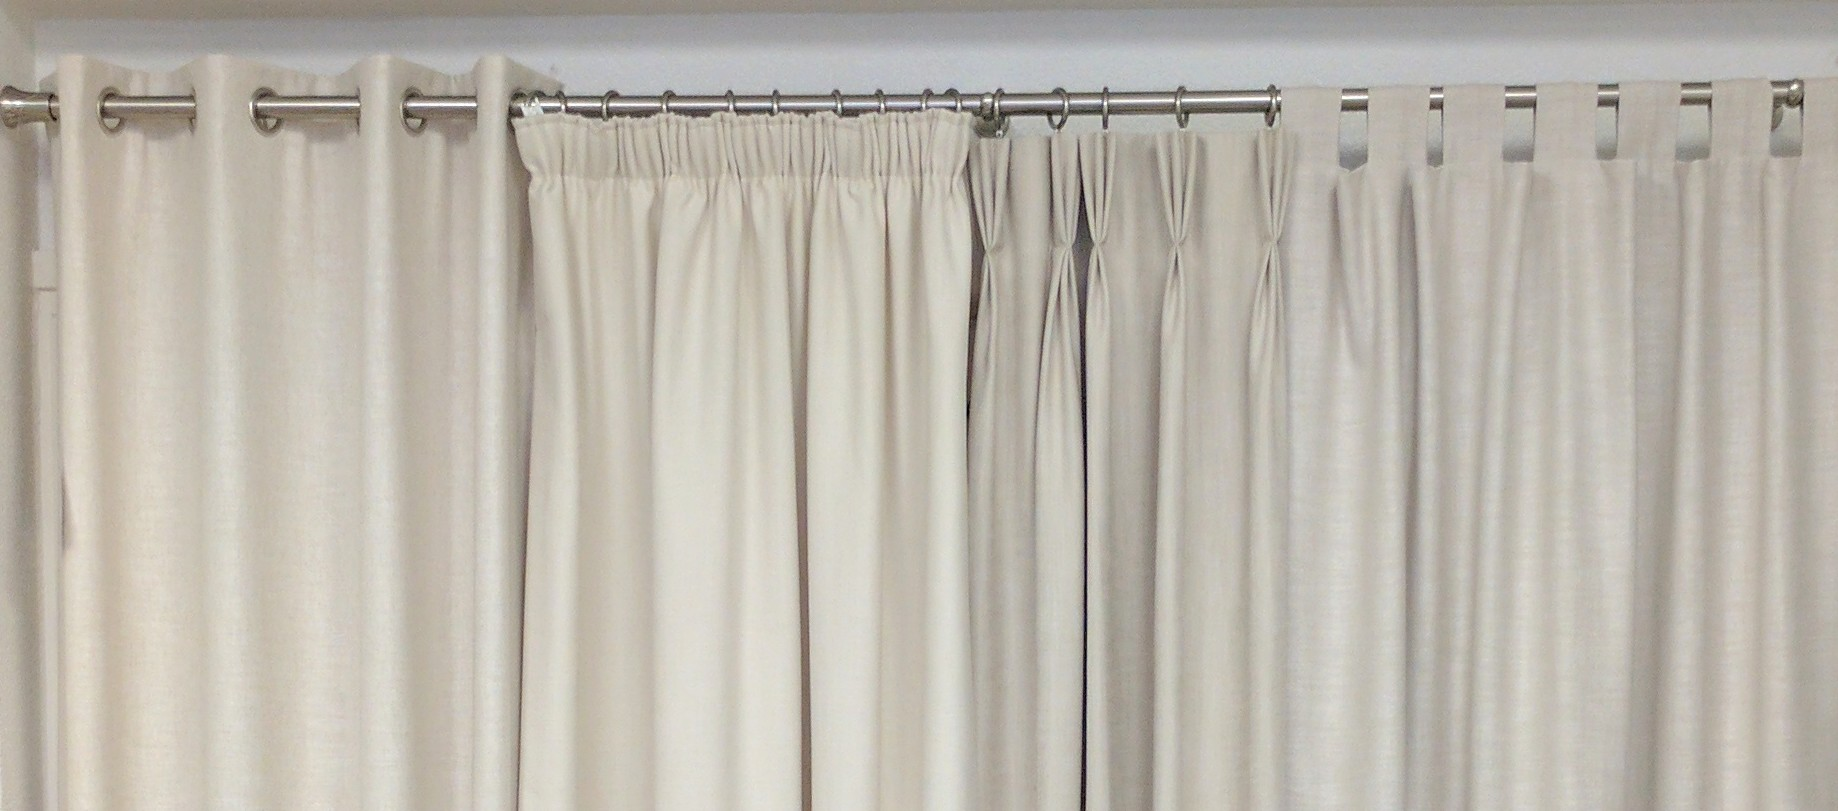 Curtain type display showing pleat, tab and many other curtain types